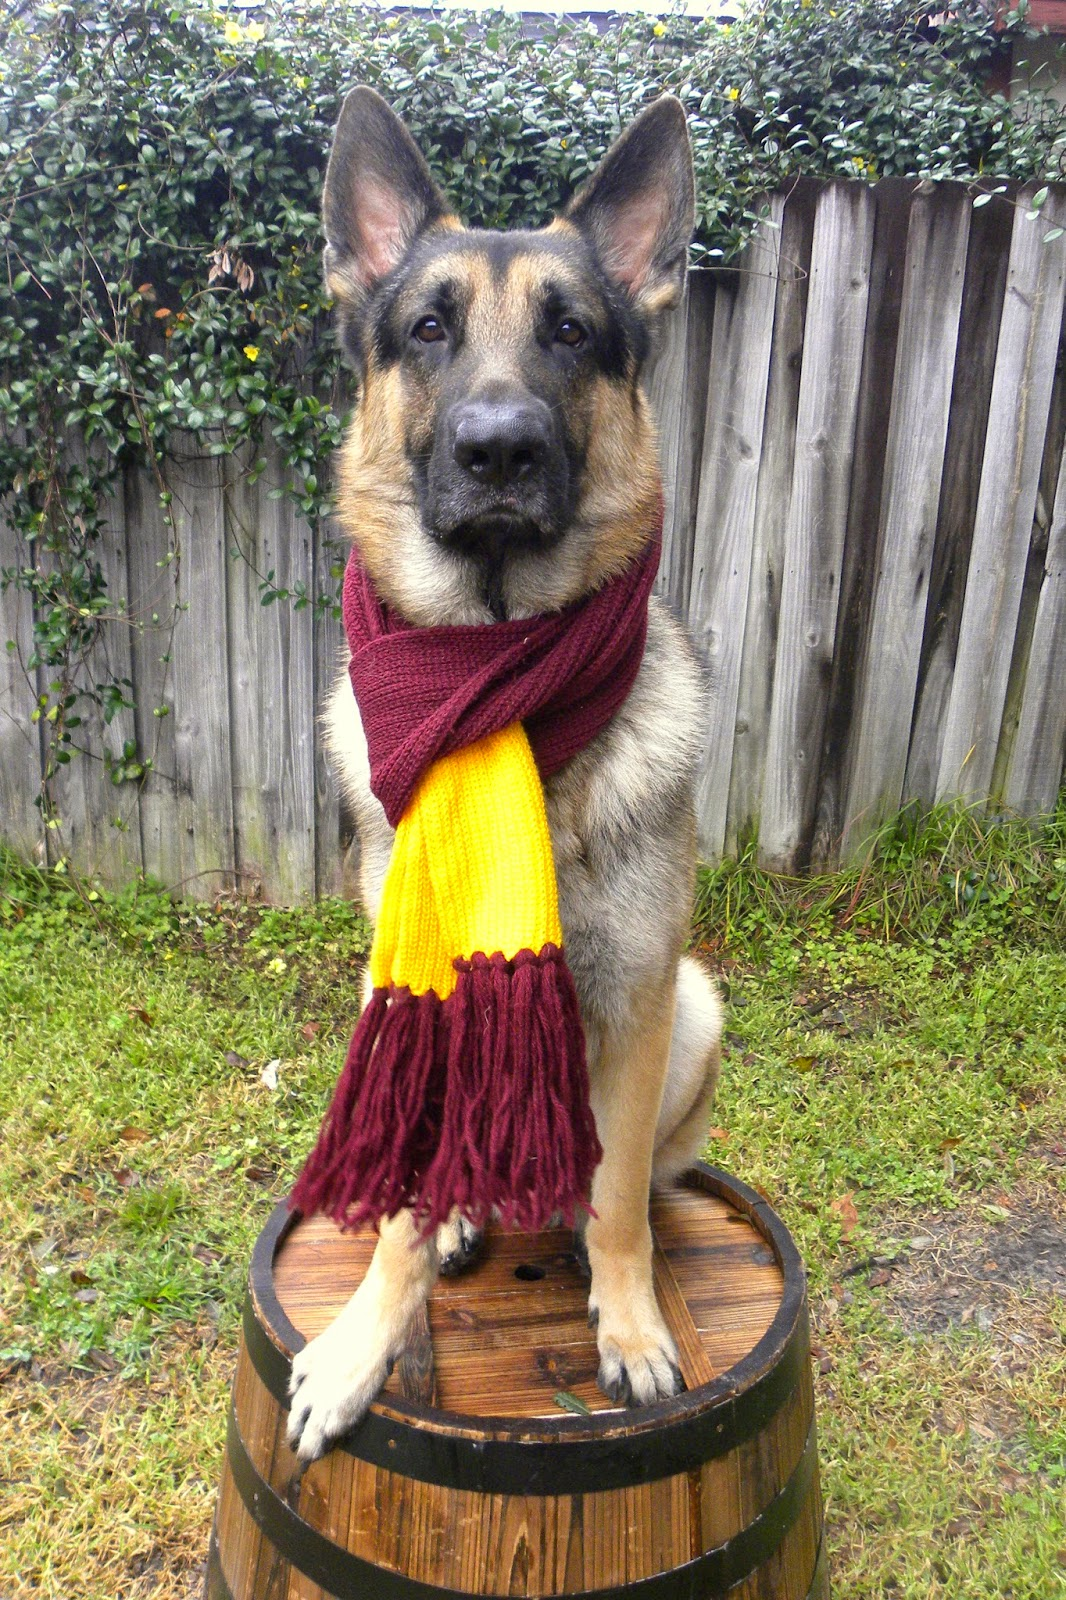 Dress up your pet day - So What Did Your Pet Wear For National Dress Up Your Pet Day Take A Picture And Link It To Blog Paws Wordless Wednesday Hop Below Can T Wait To See It